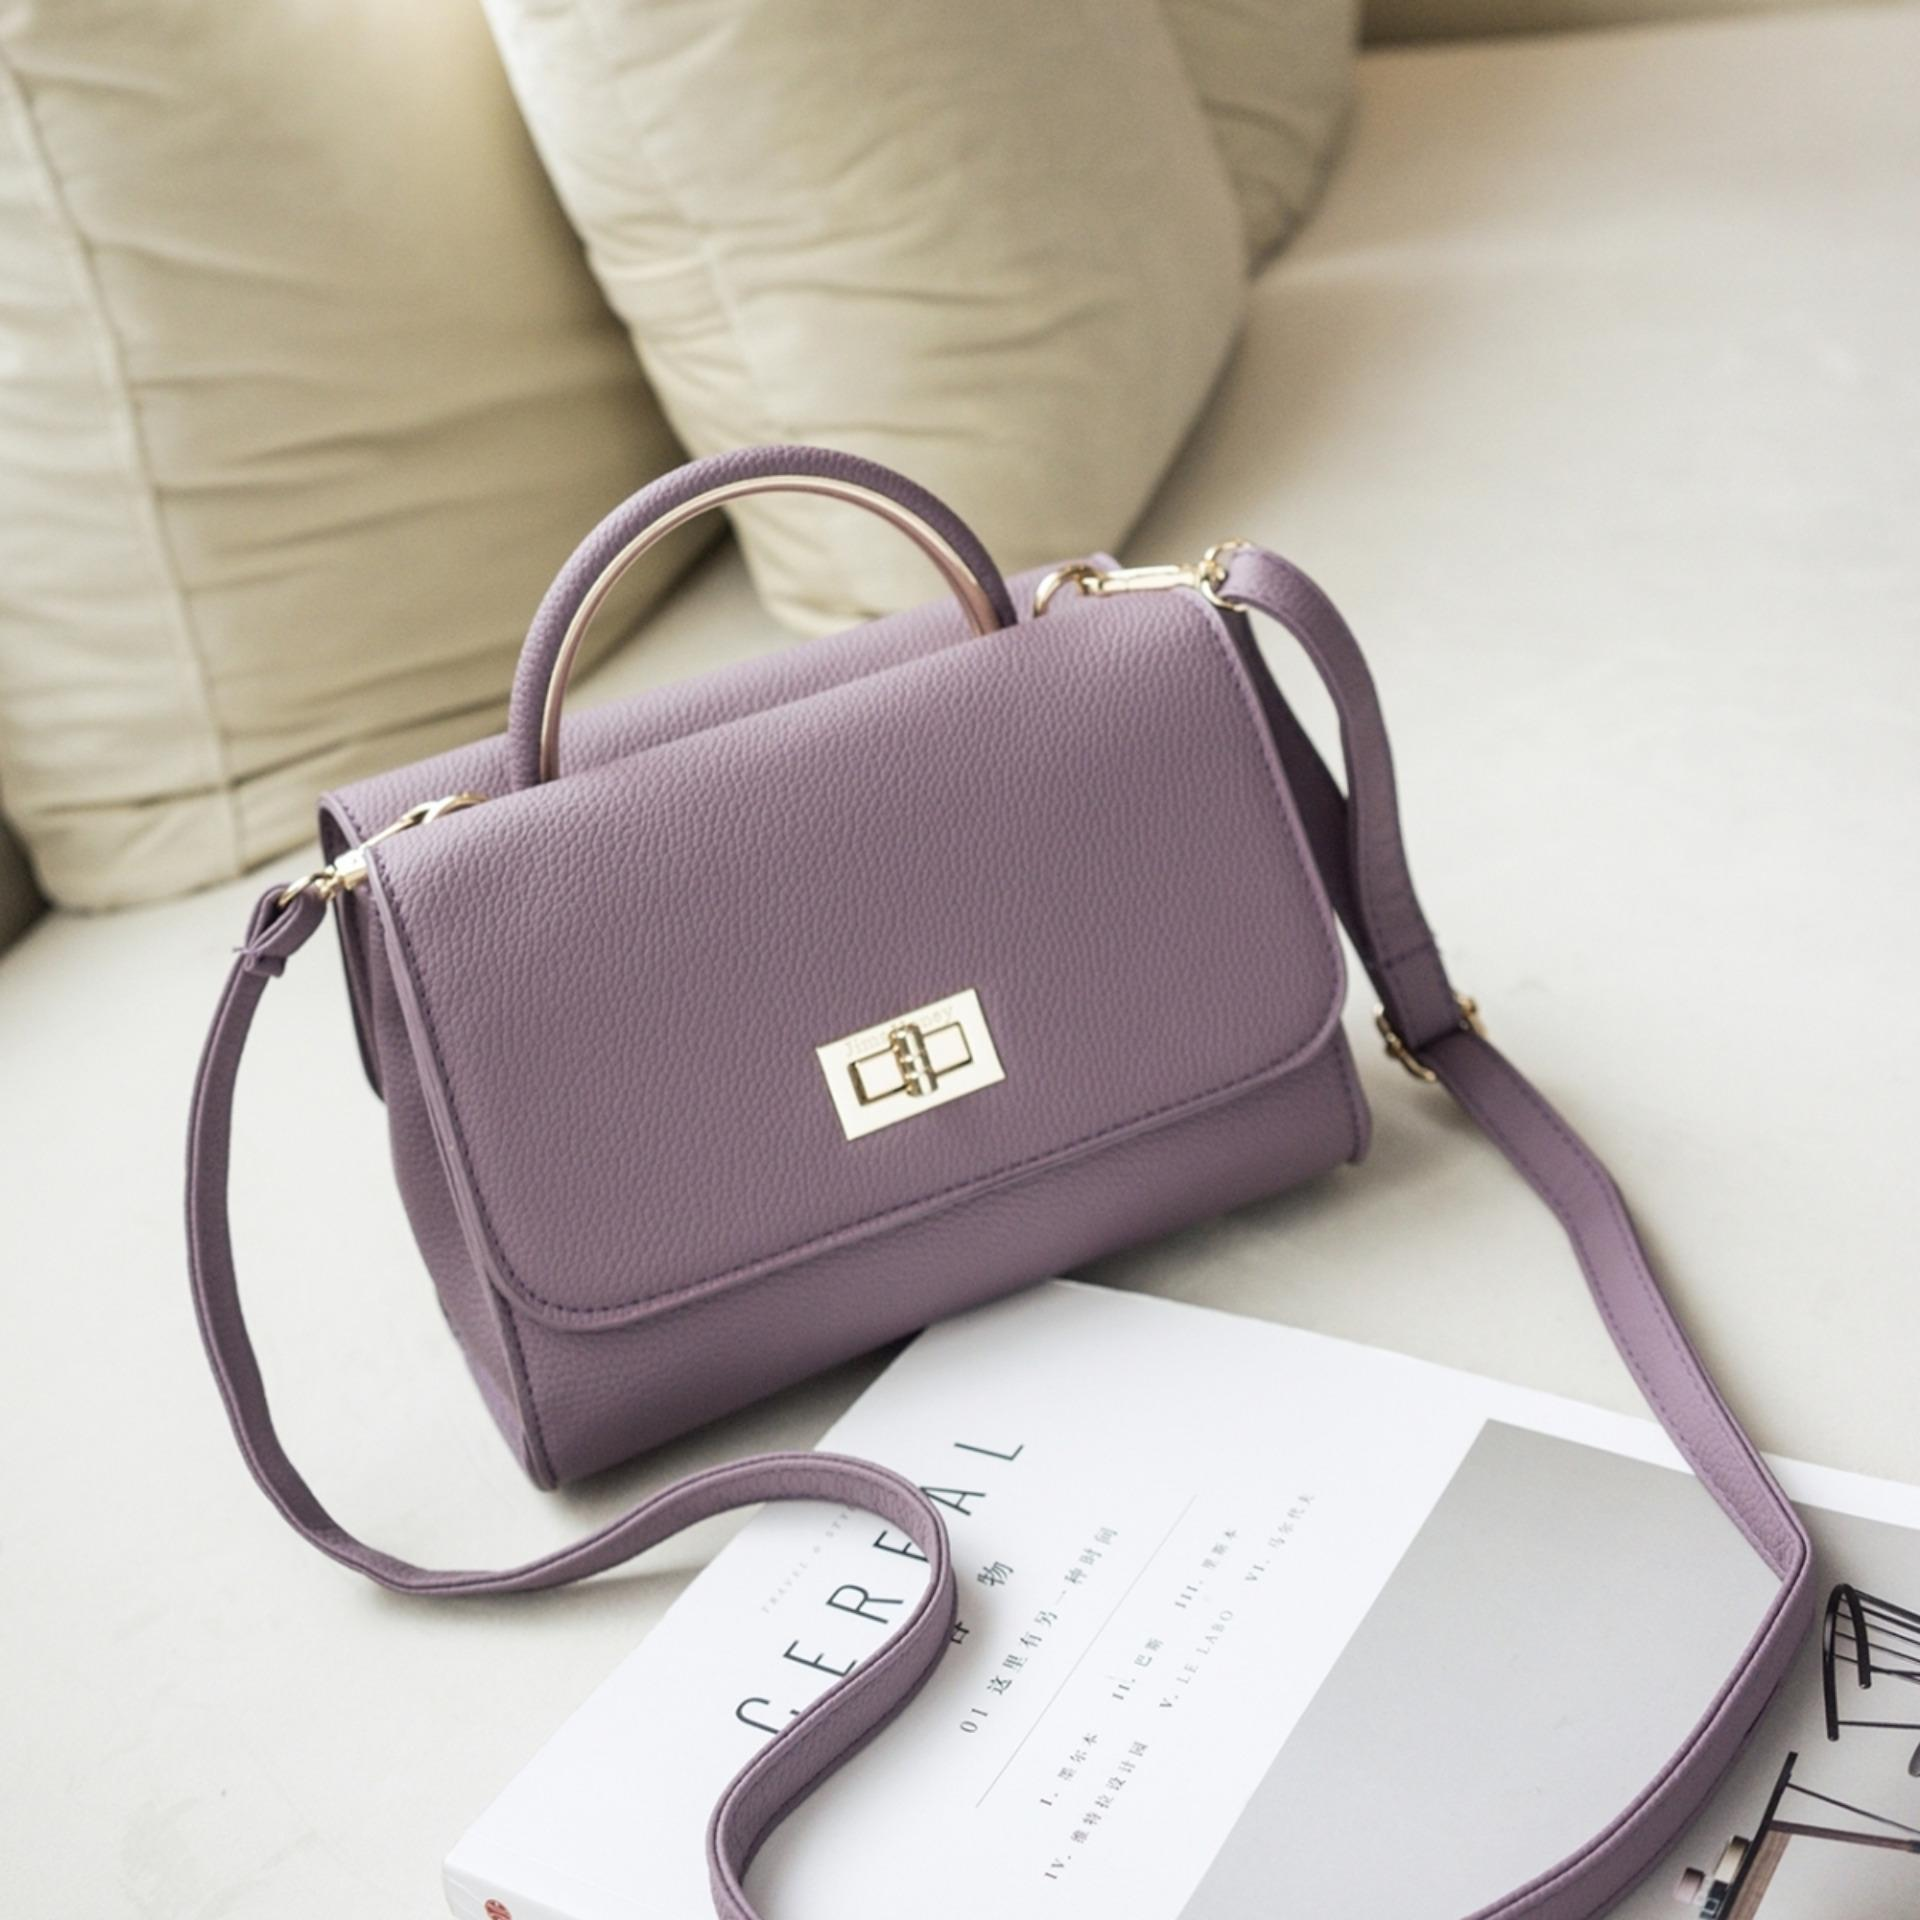 Jual Jims Honey Elegant Top Fashion Lily Bag Purple Online Jawa Barat